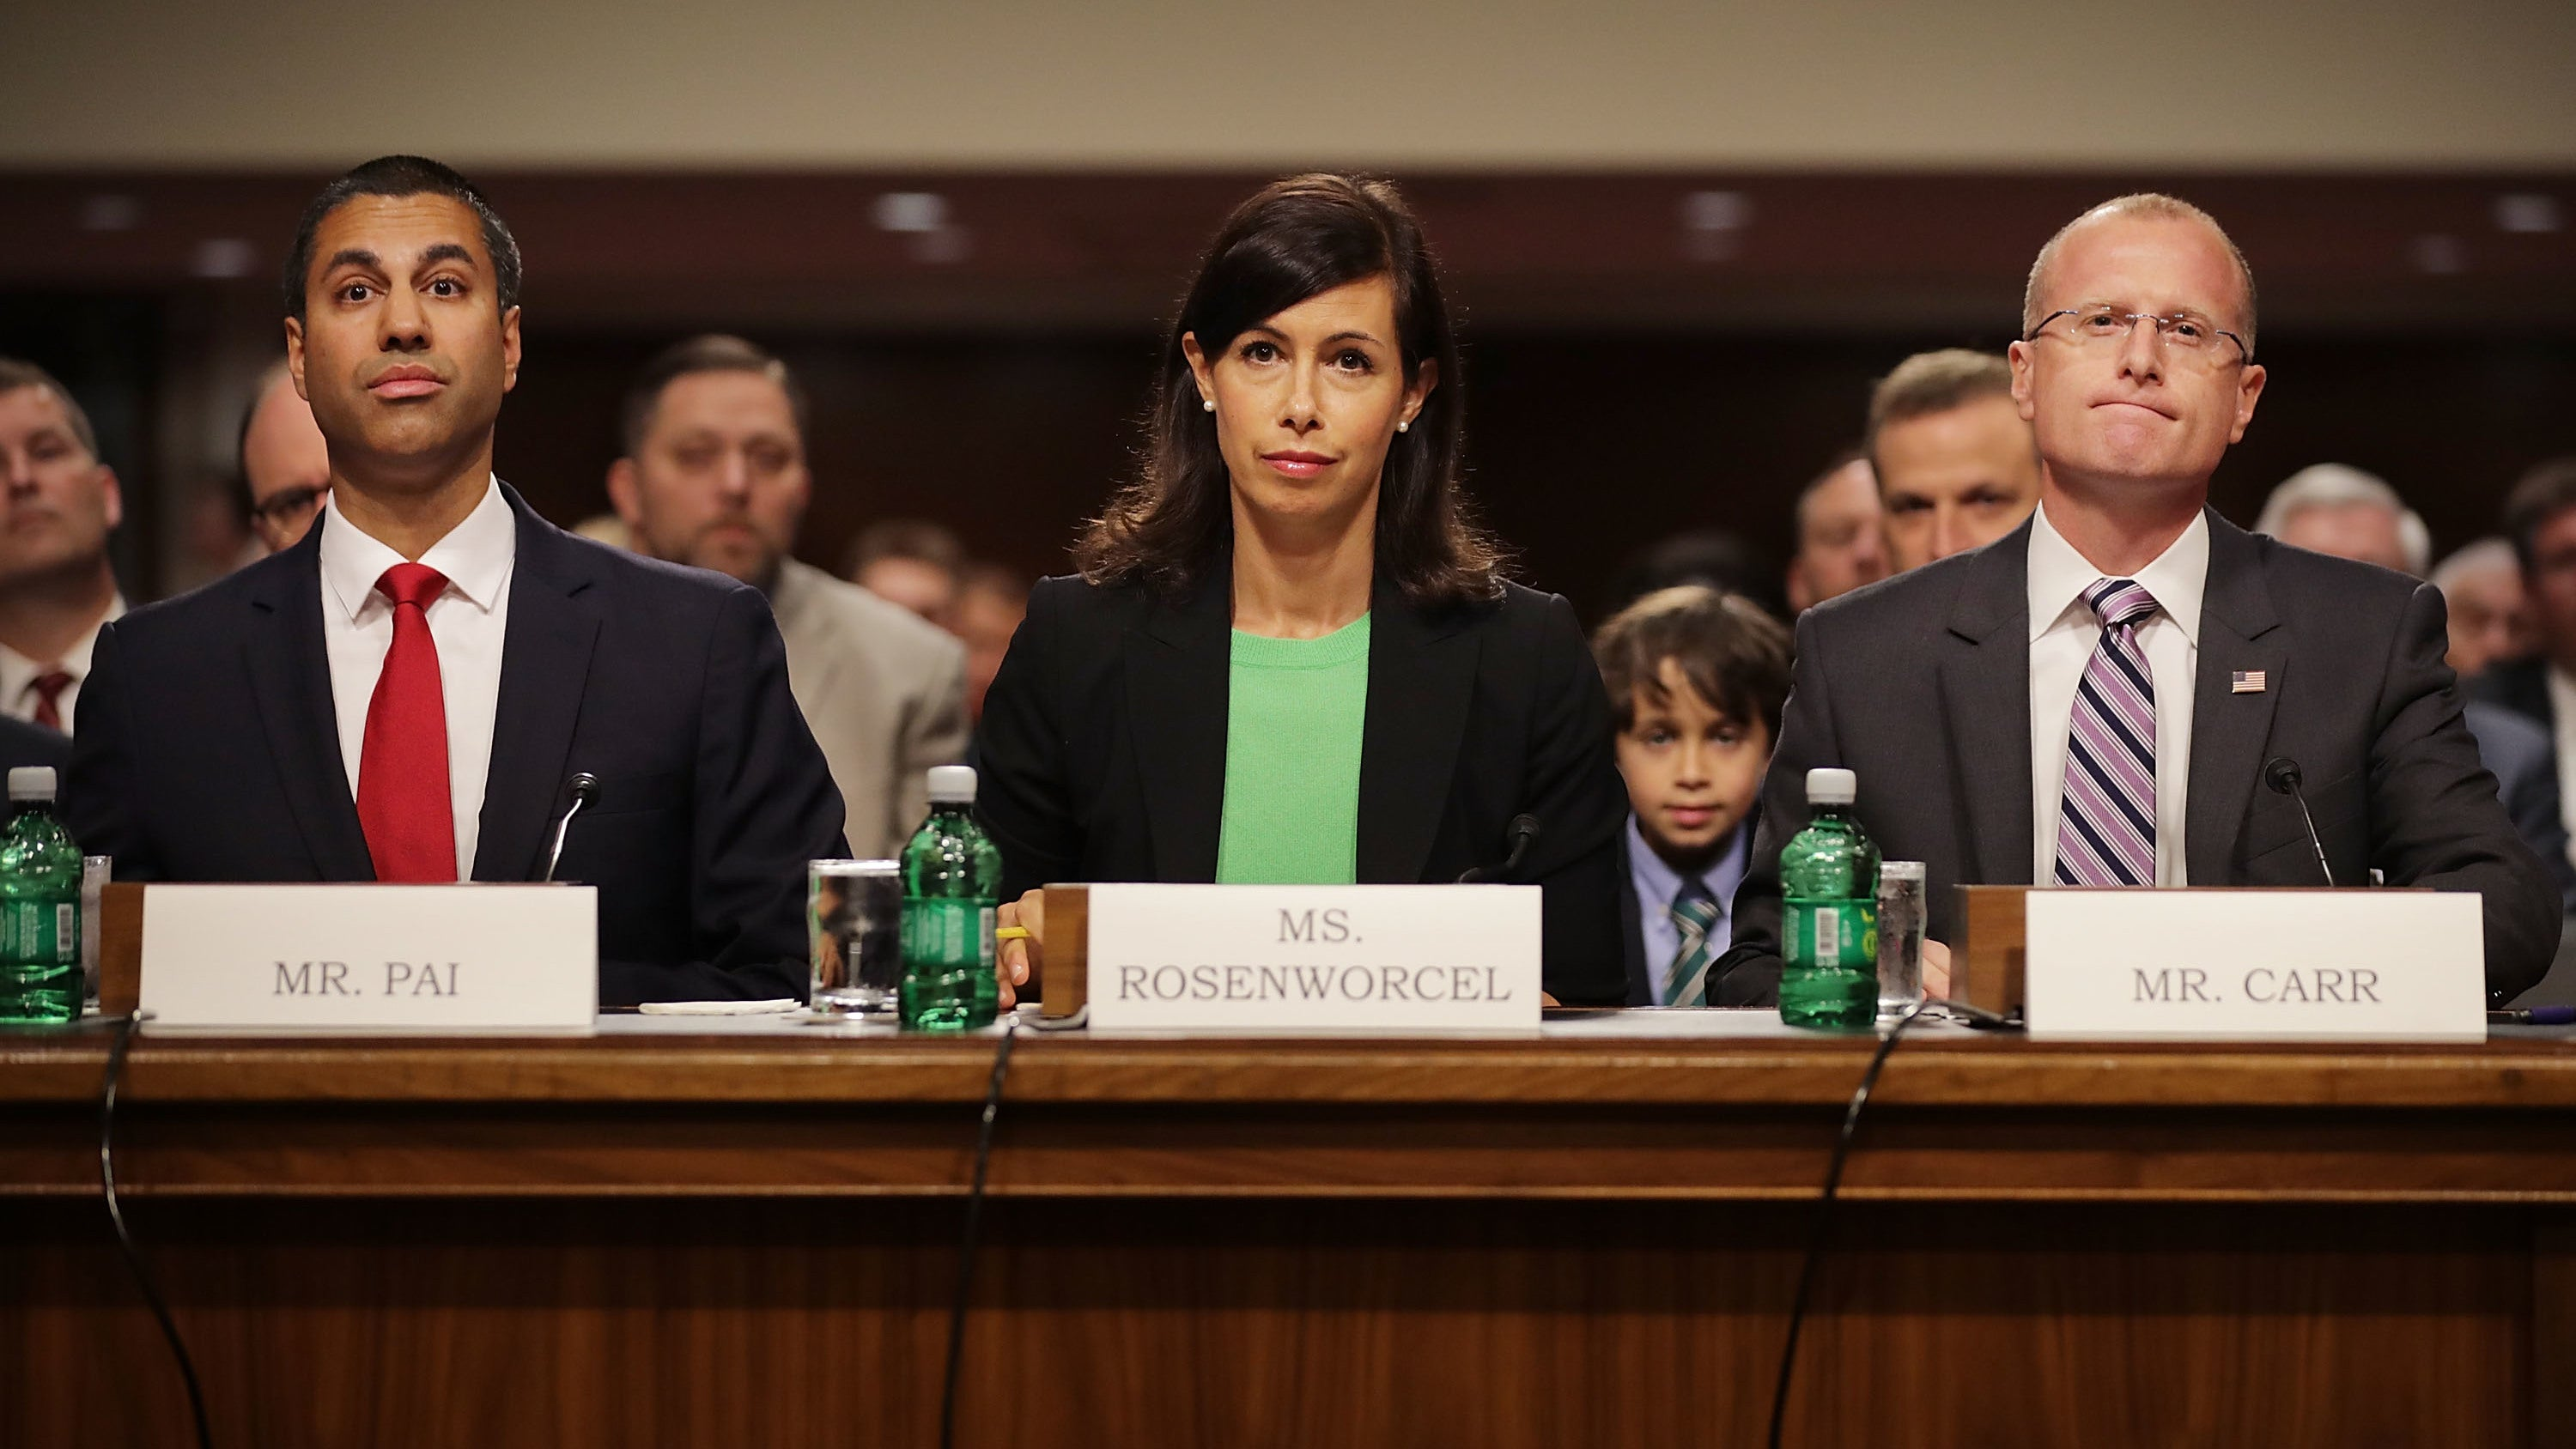 FCC Won't Help Uncover Identity Theft In Net Neutrality Comments, Says New York's Top Prosecutor